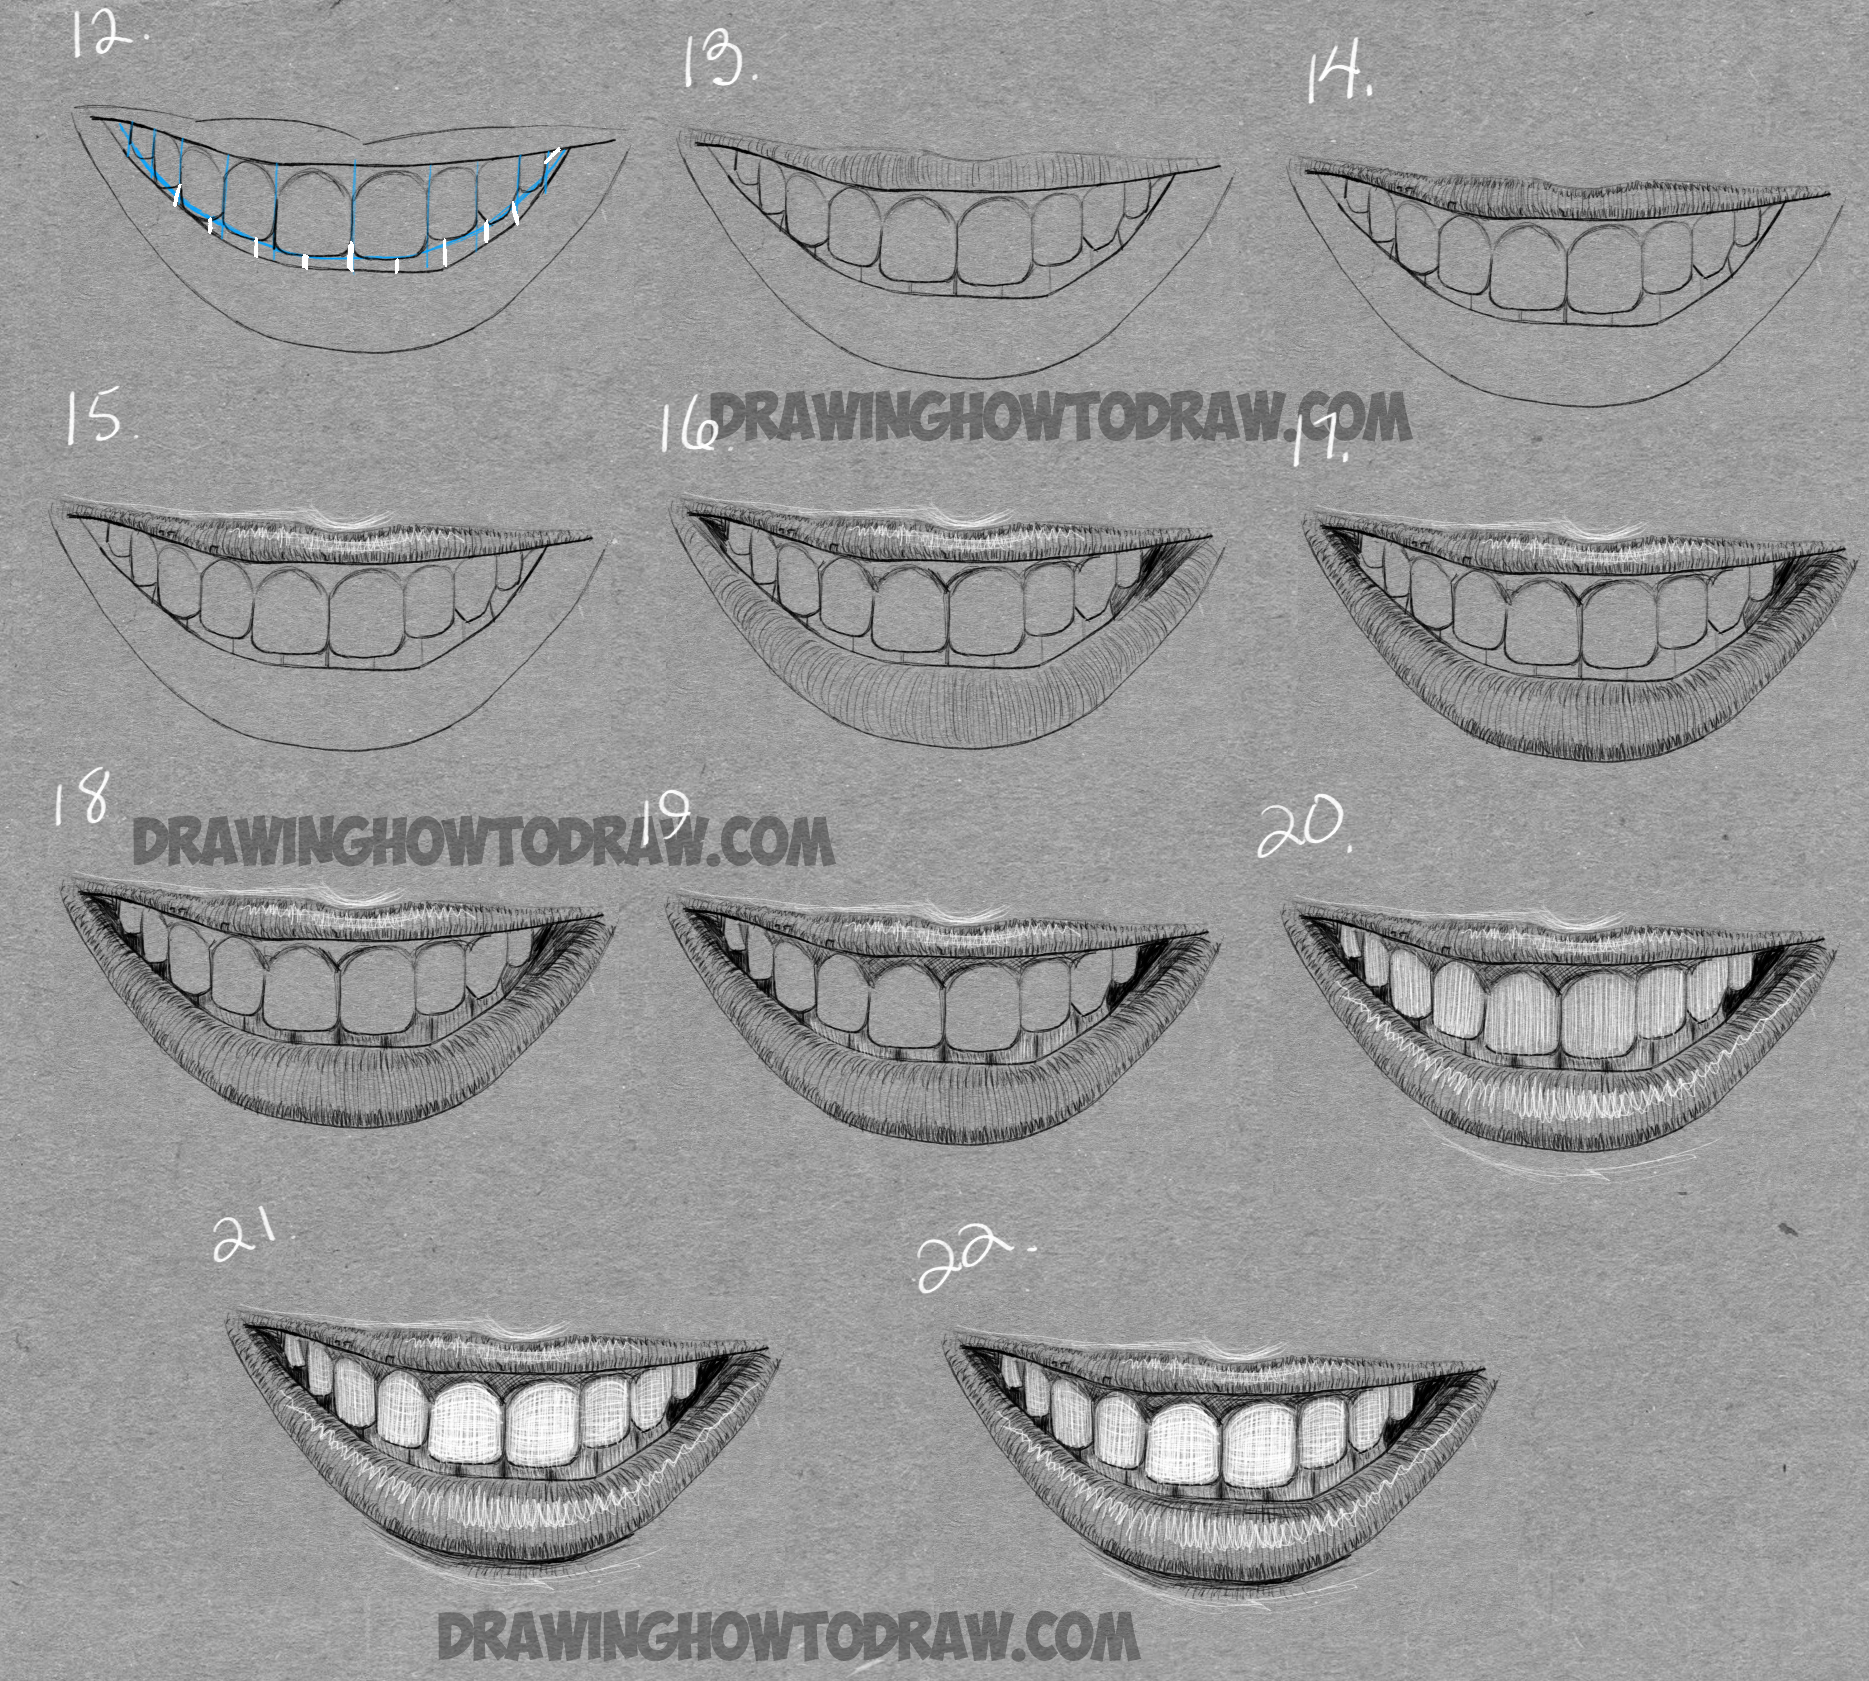 How to Draw a Mouth Full of Teeth : Drawing a Smiling ...